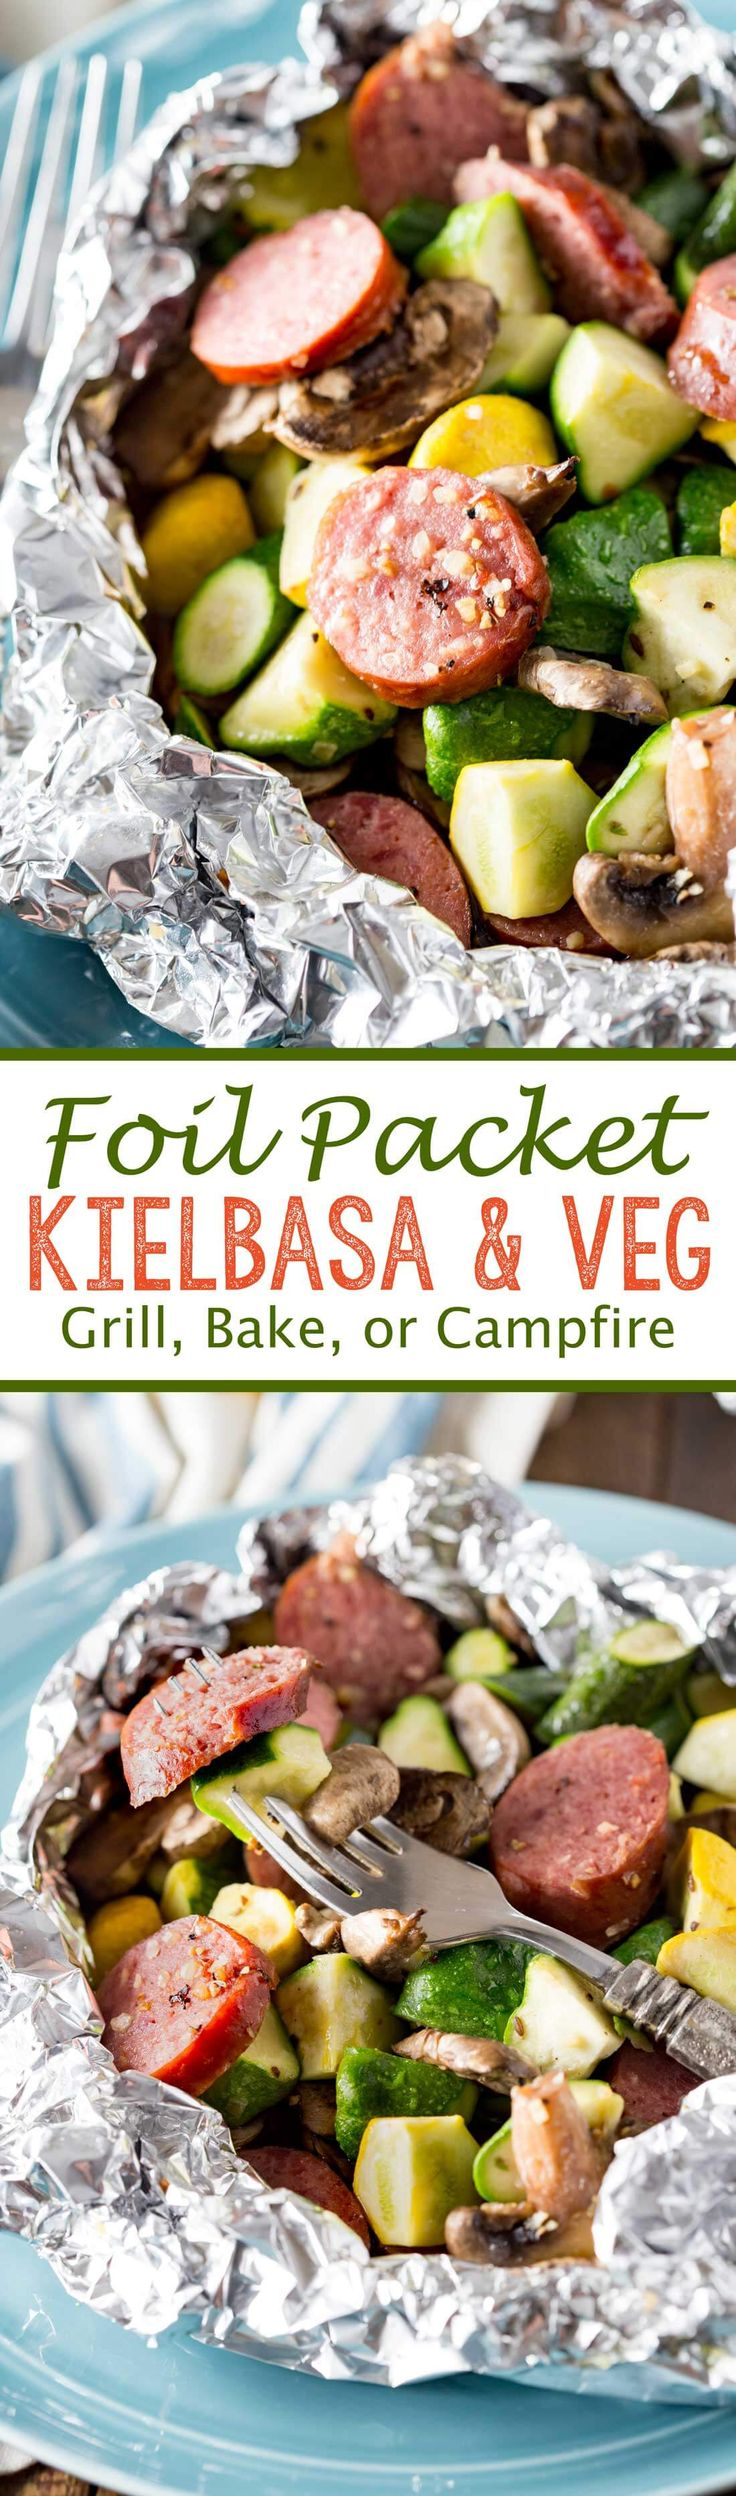 Foil Packet Kielbasa Recipe with sausage and veggies that can be grilled, baked, or cooked in a campfire!